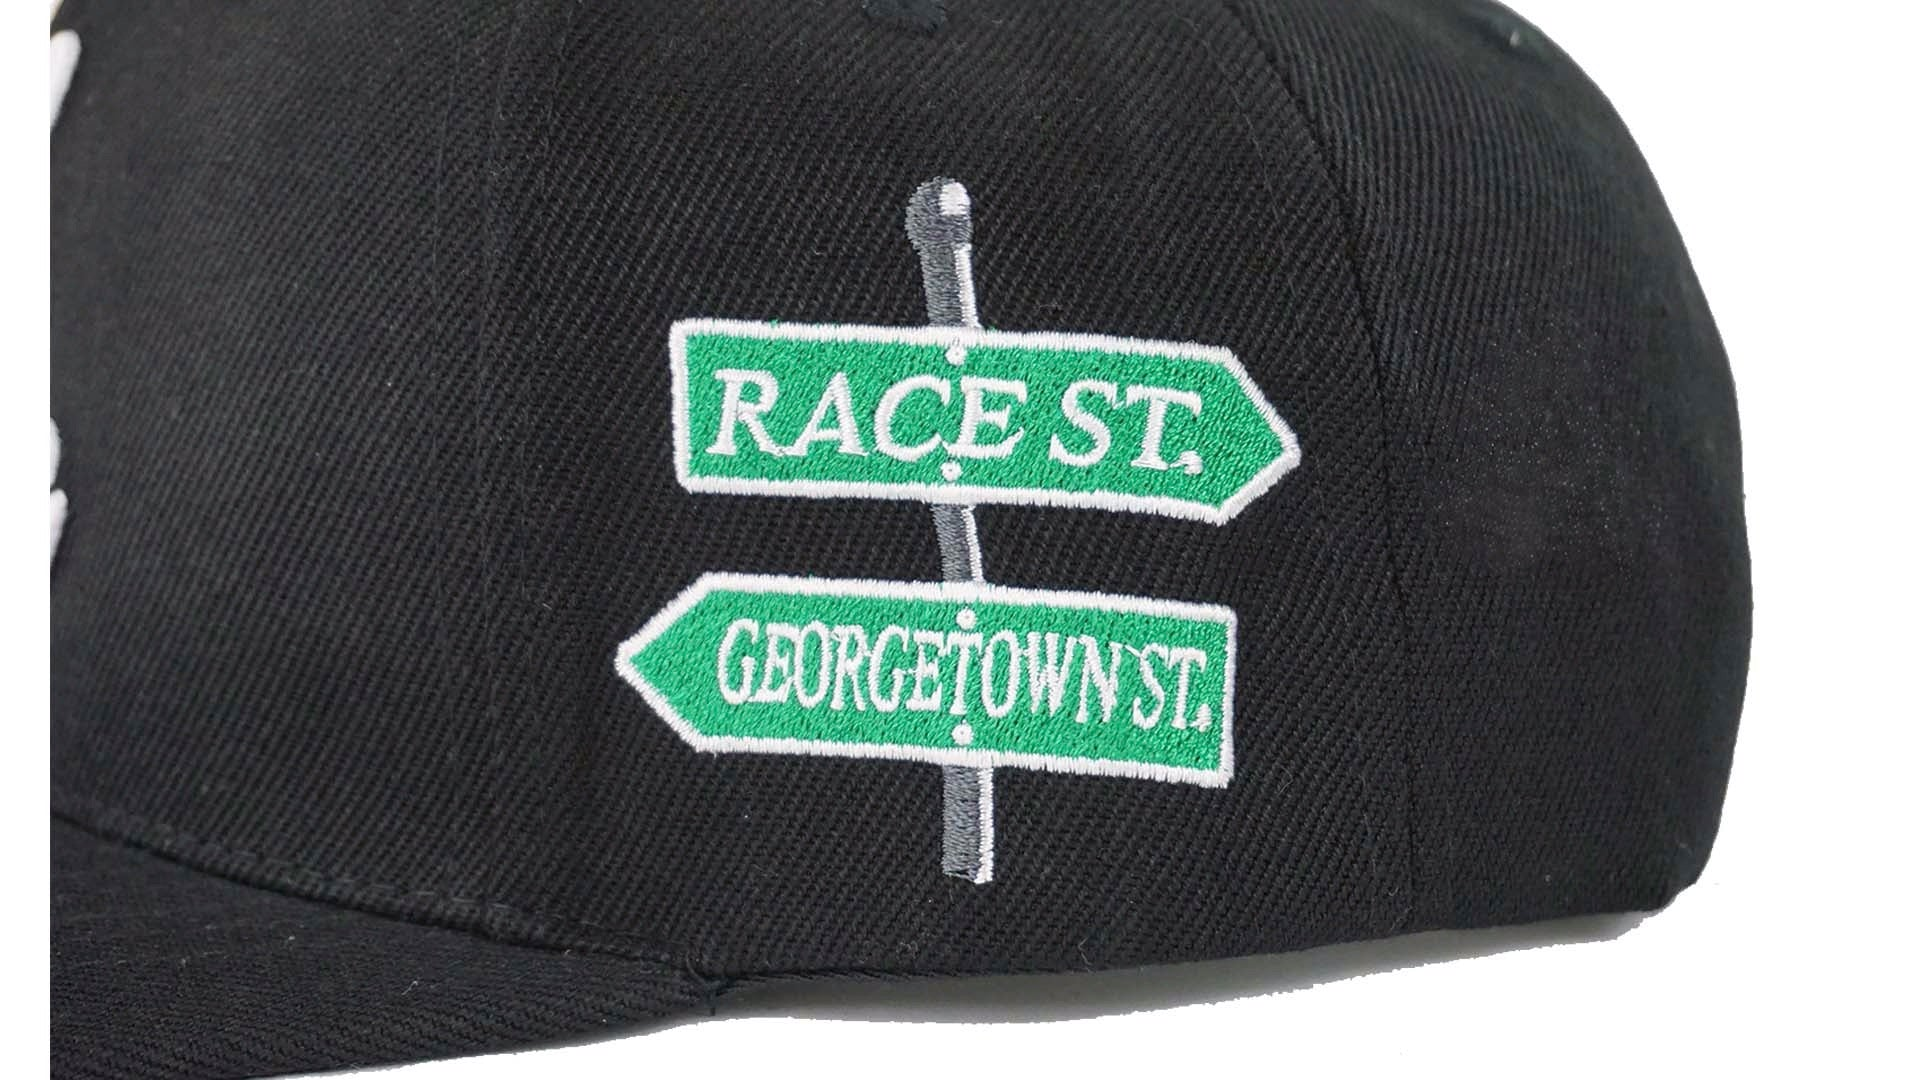 Where I Grew Up Race St. & Georgetown St